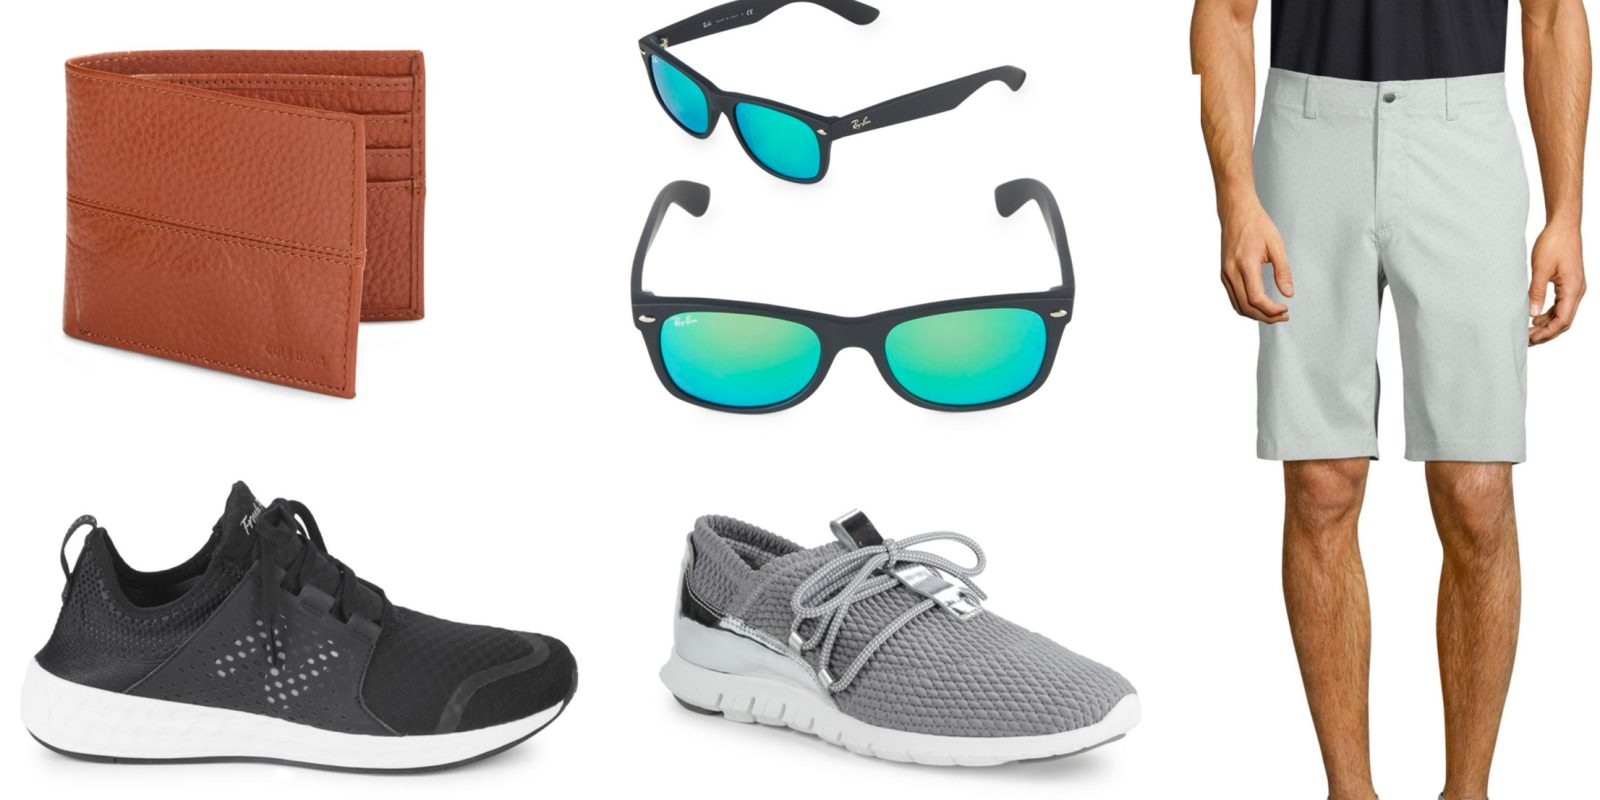 411be73ba693 Saks Off Fifth offers an extra up to 40% off Cole Haan, Michael Kors,  Ray-Ban, more